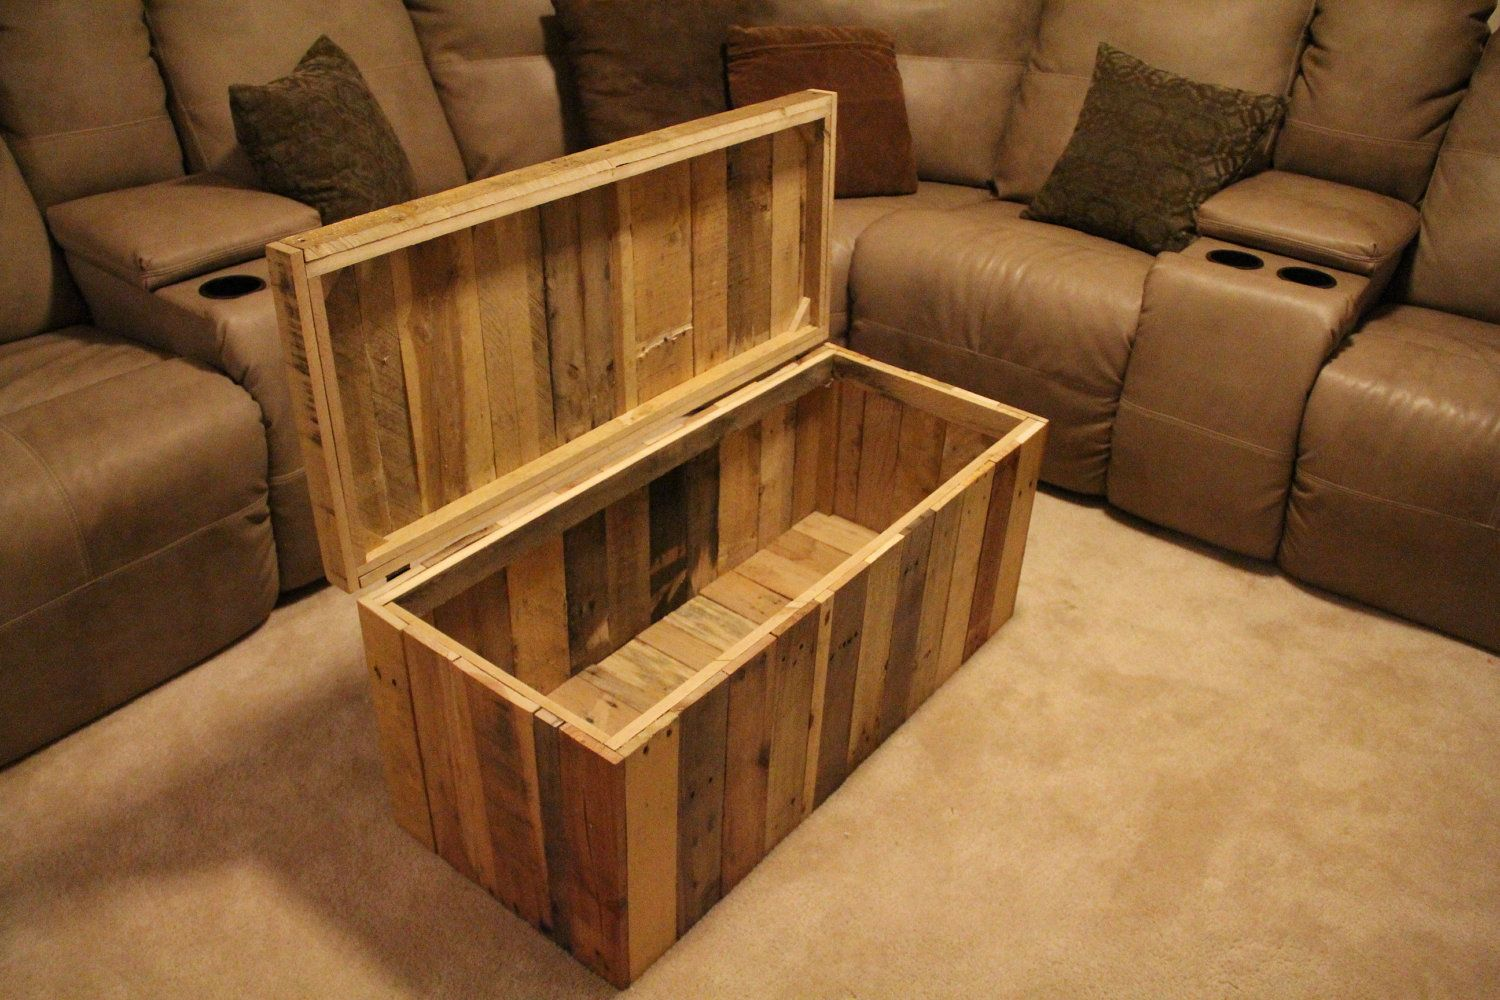 Pallet toy chestdiy project shelves cabinets tables storage